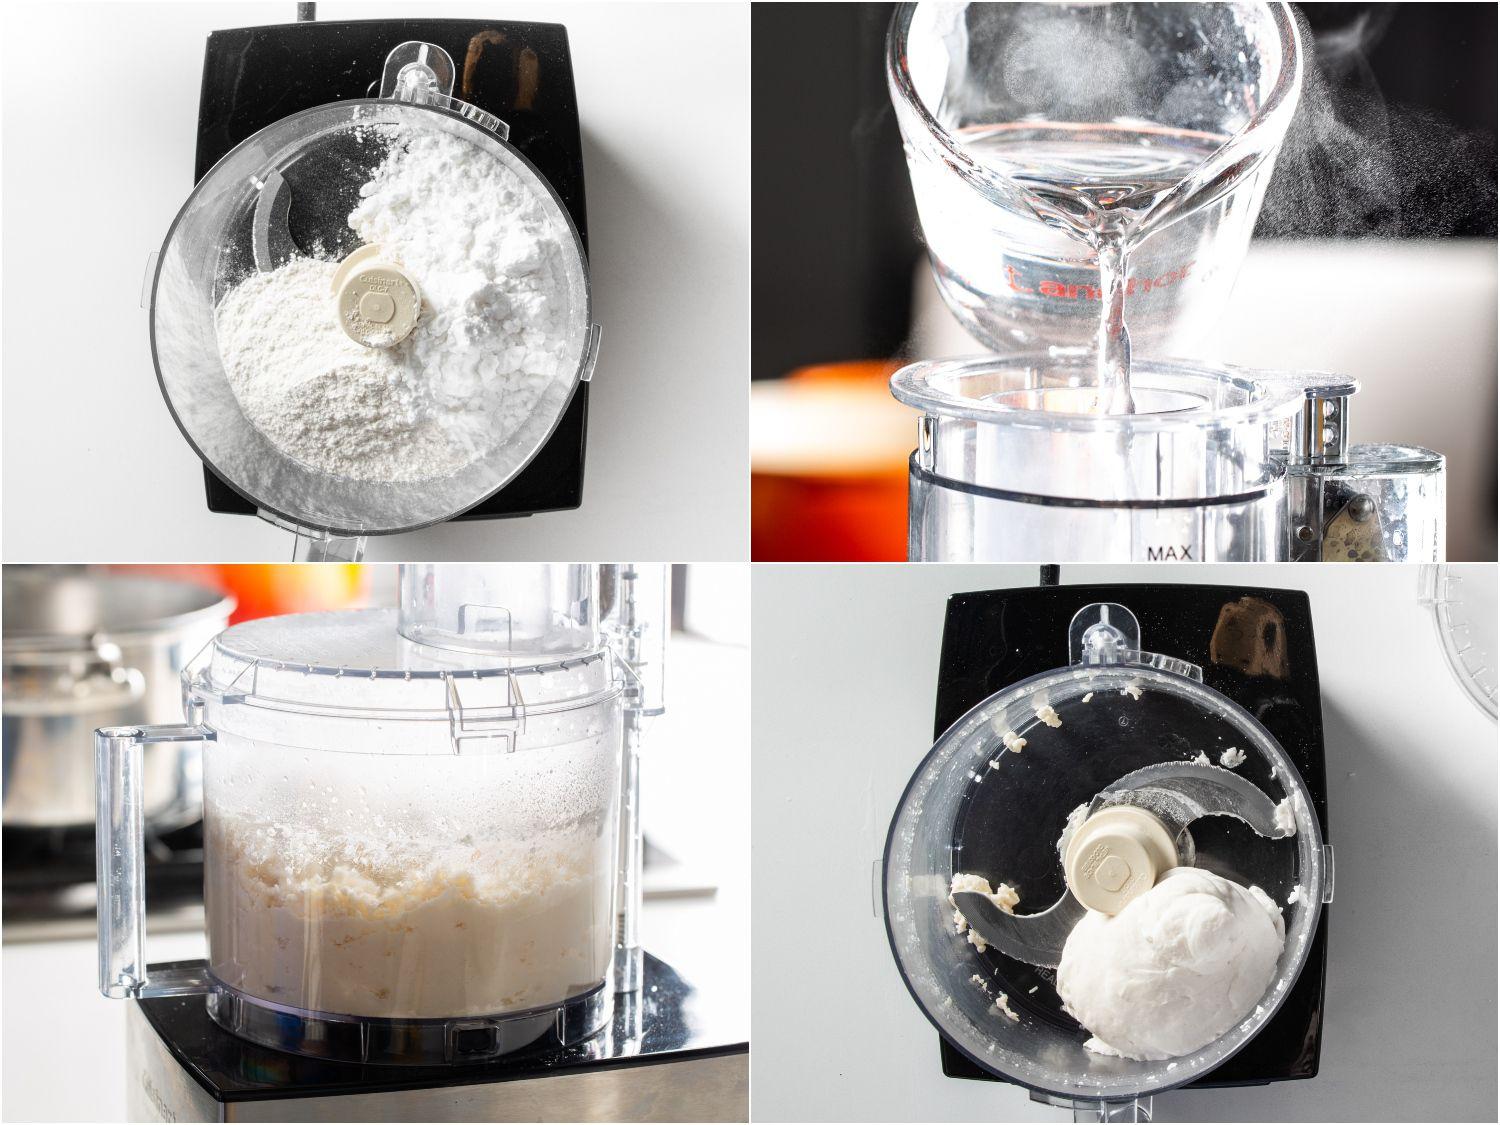 Collage of potato starch-wheat flour dough being made in food processor